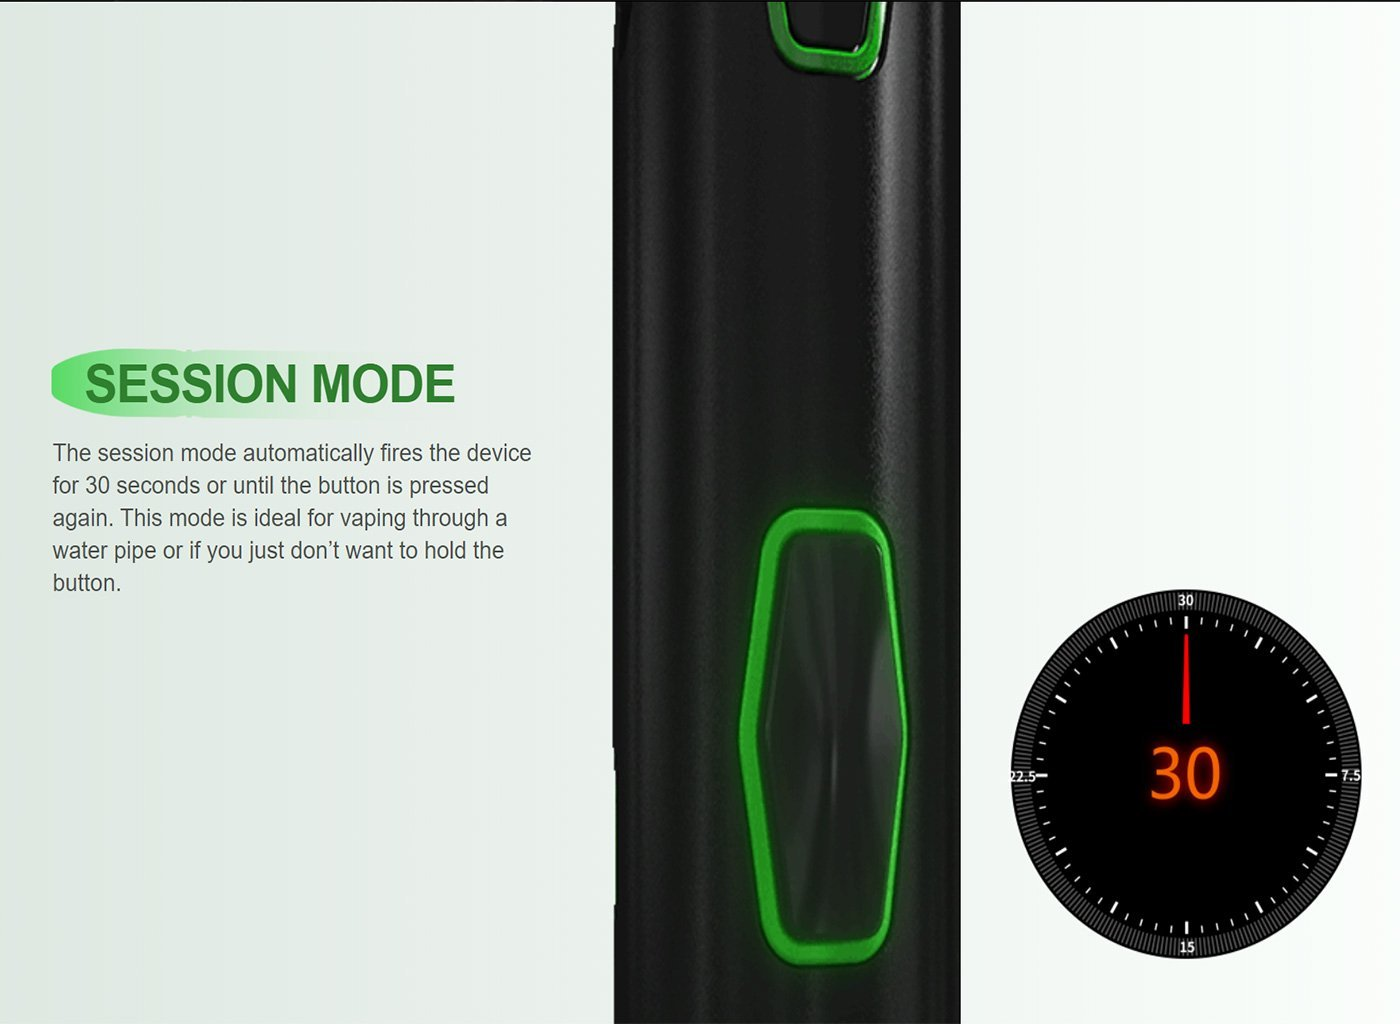 Vivant VLeaf Go convection dry herb vaporizer explaining session mode